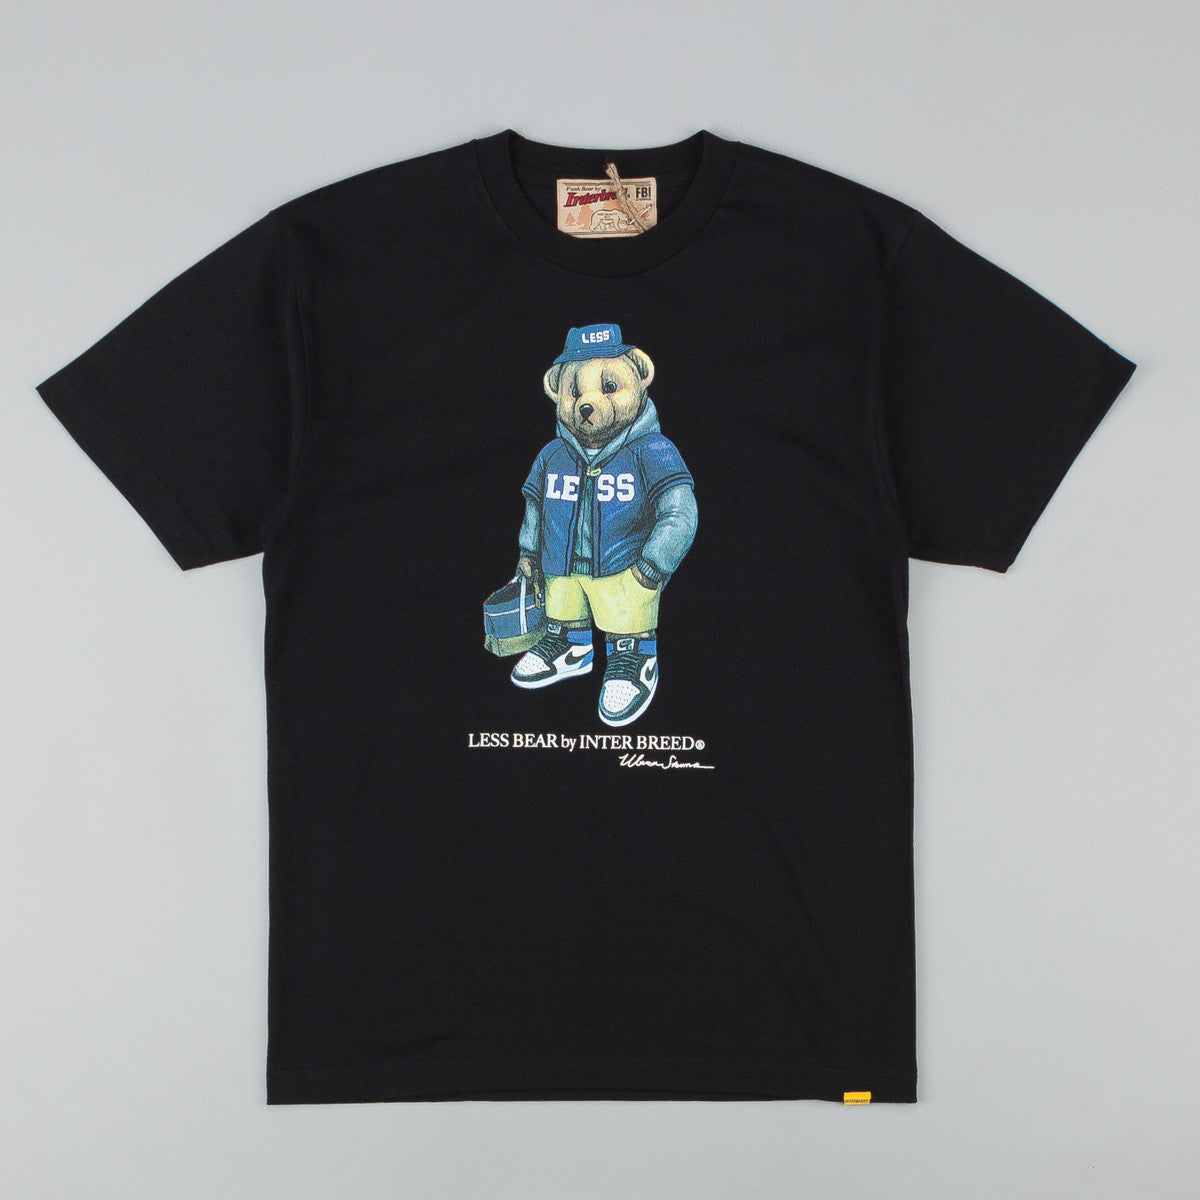 Less x Interbreed Bear T-Shirt